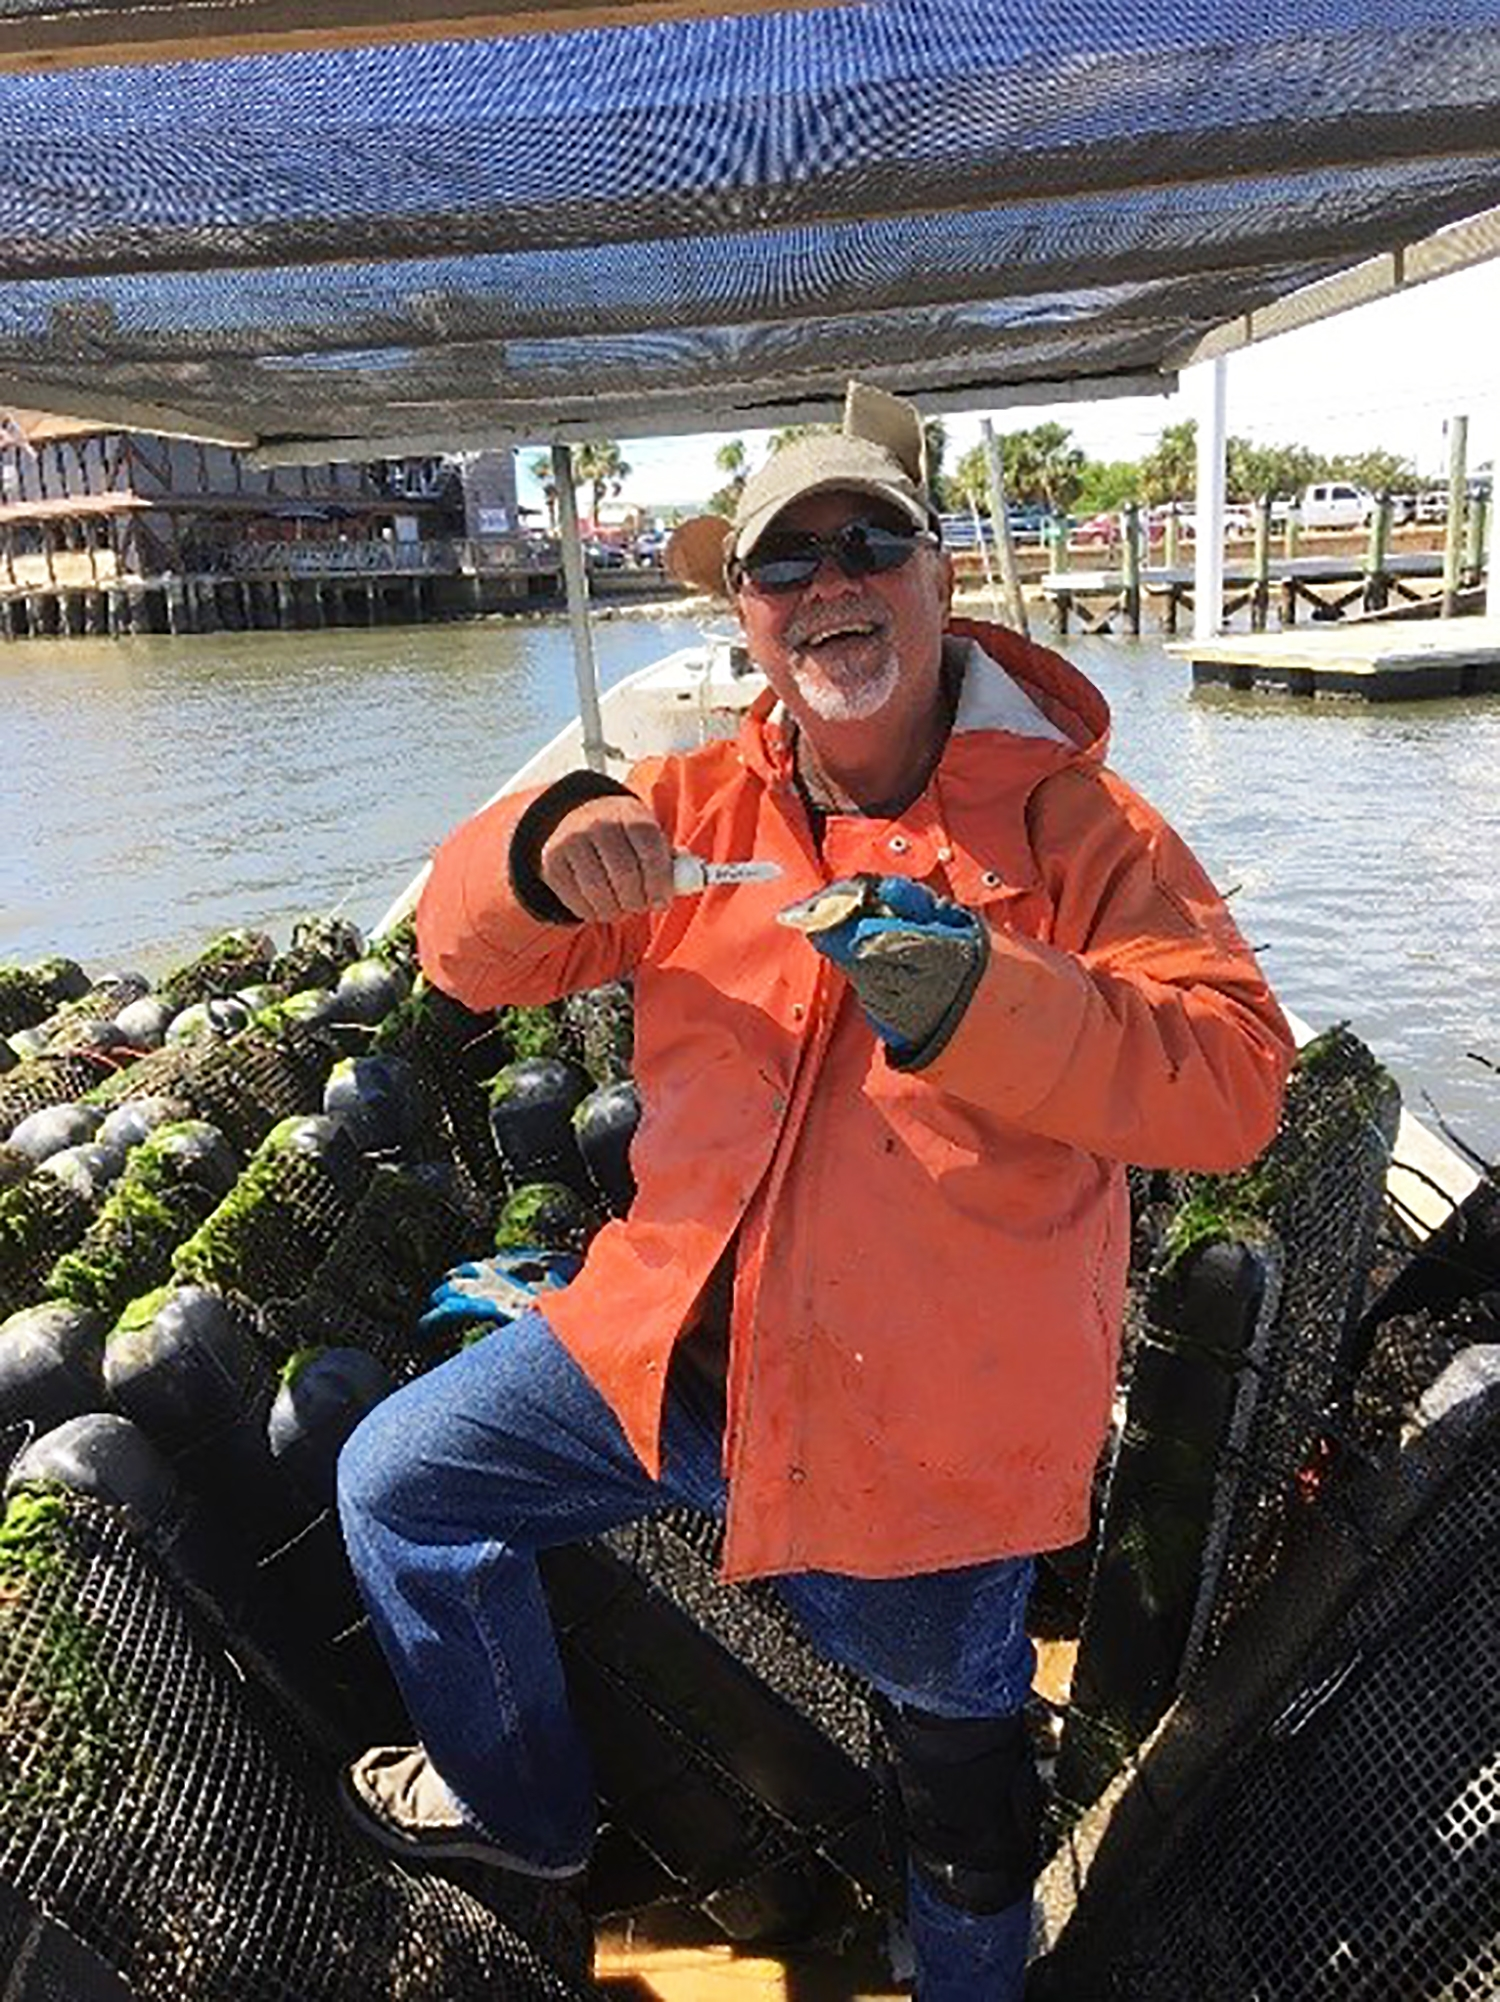 Dennis David of Indian River Oyster Company visits Southern Cross Sea Farms in Cedar Key, Florida.